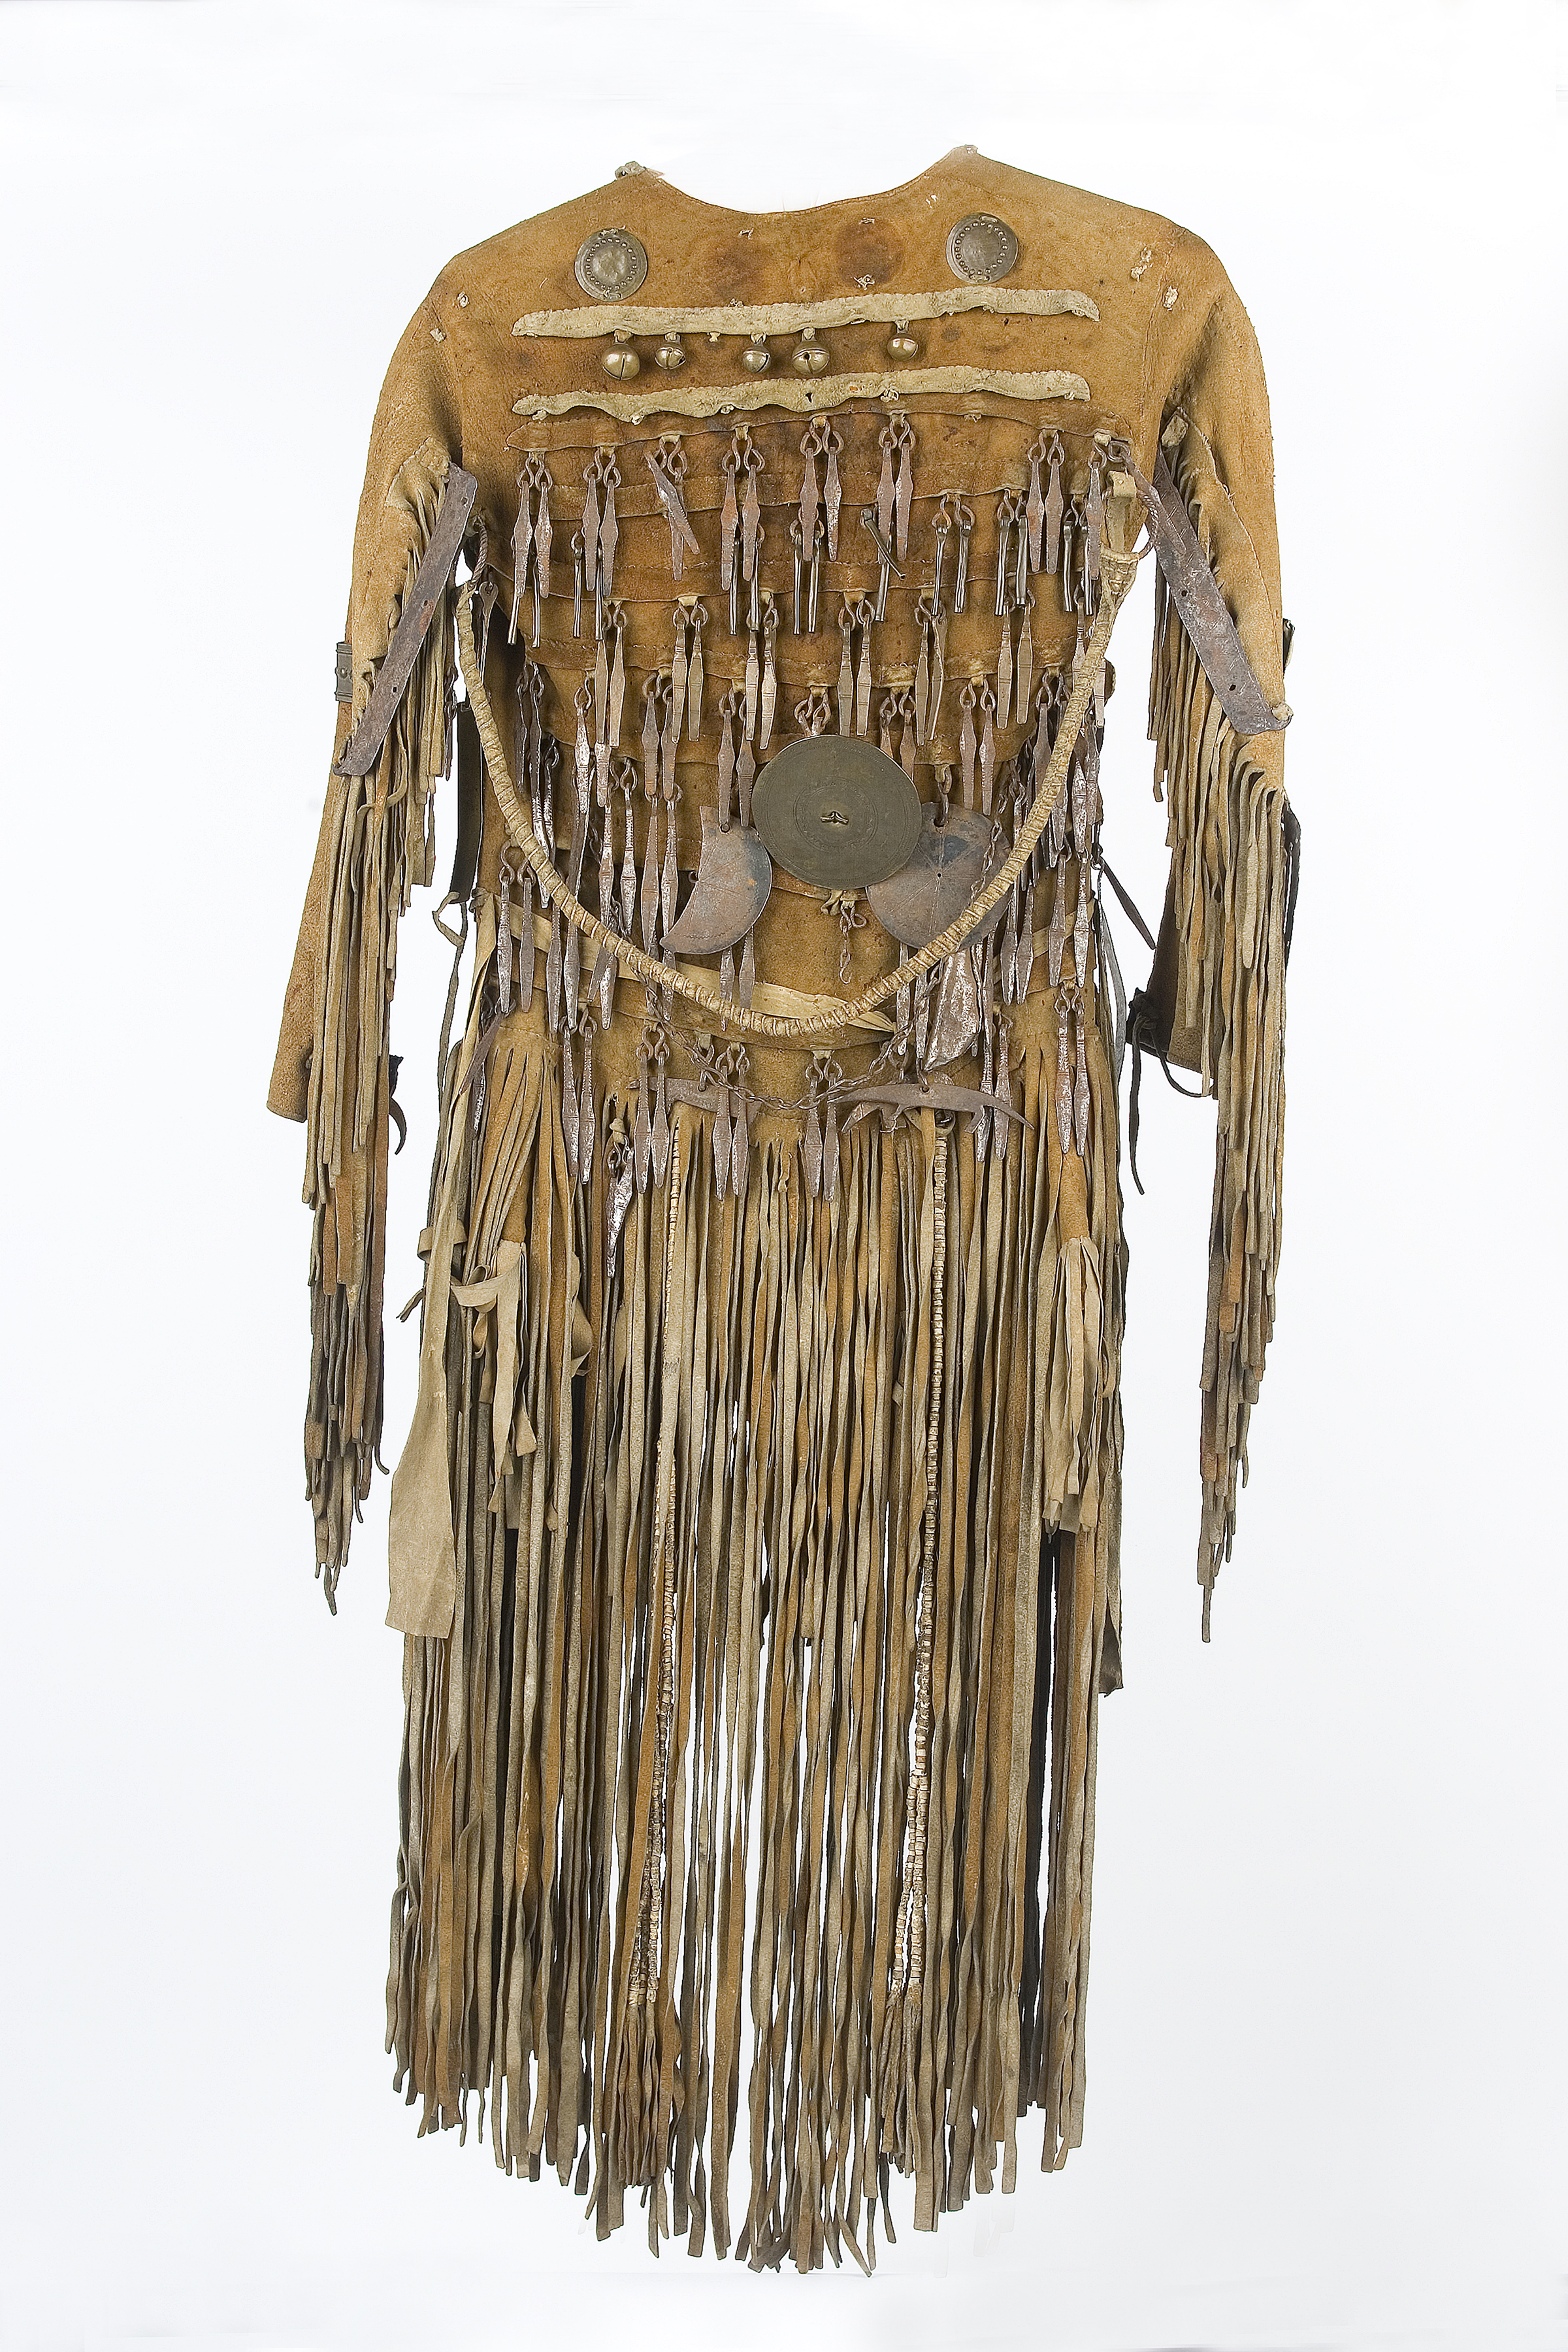 Jacket of a shaman (back); leather, iron, tendon wire; Northeast Siberia, 1800-1803. Collection National Museum of World Cultures Foundation